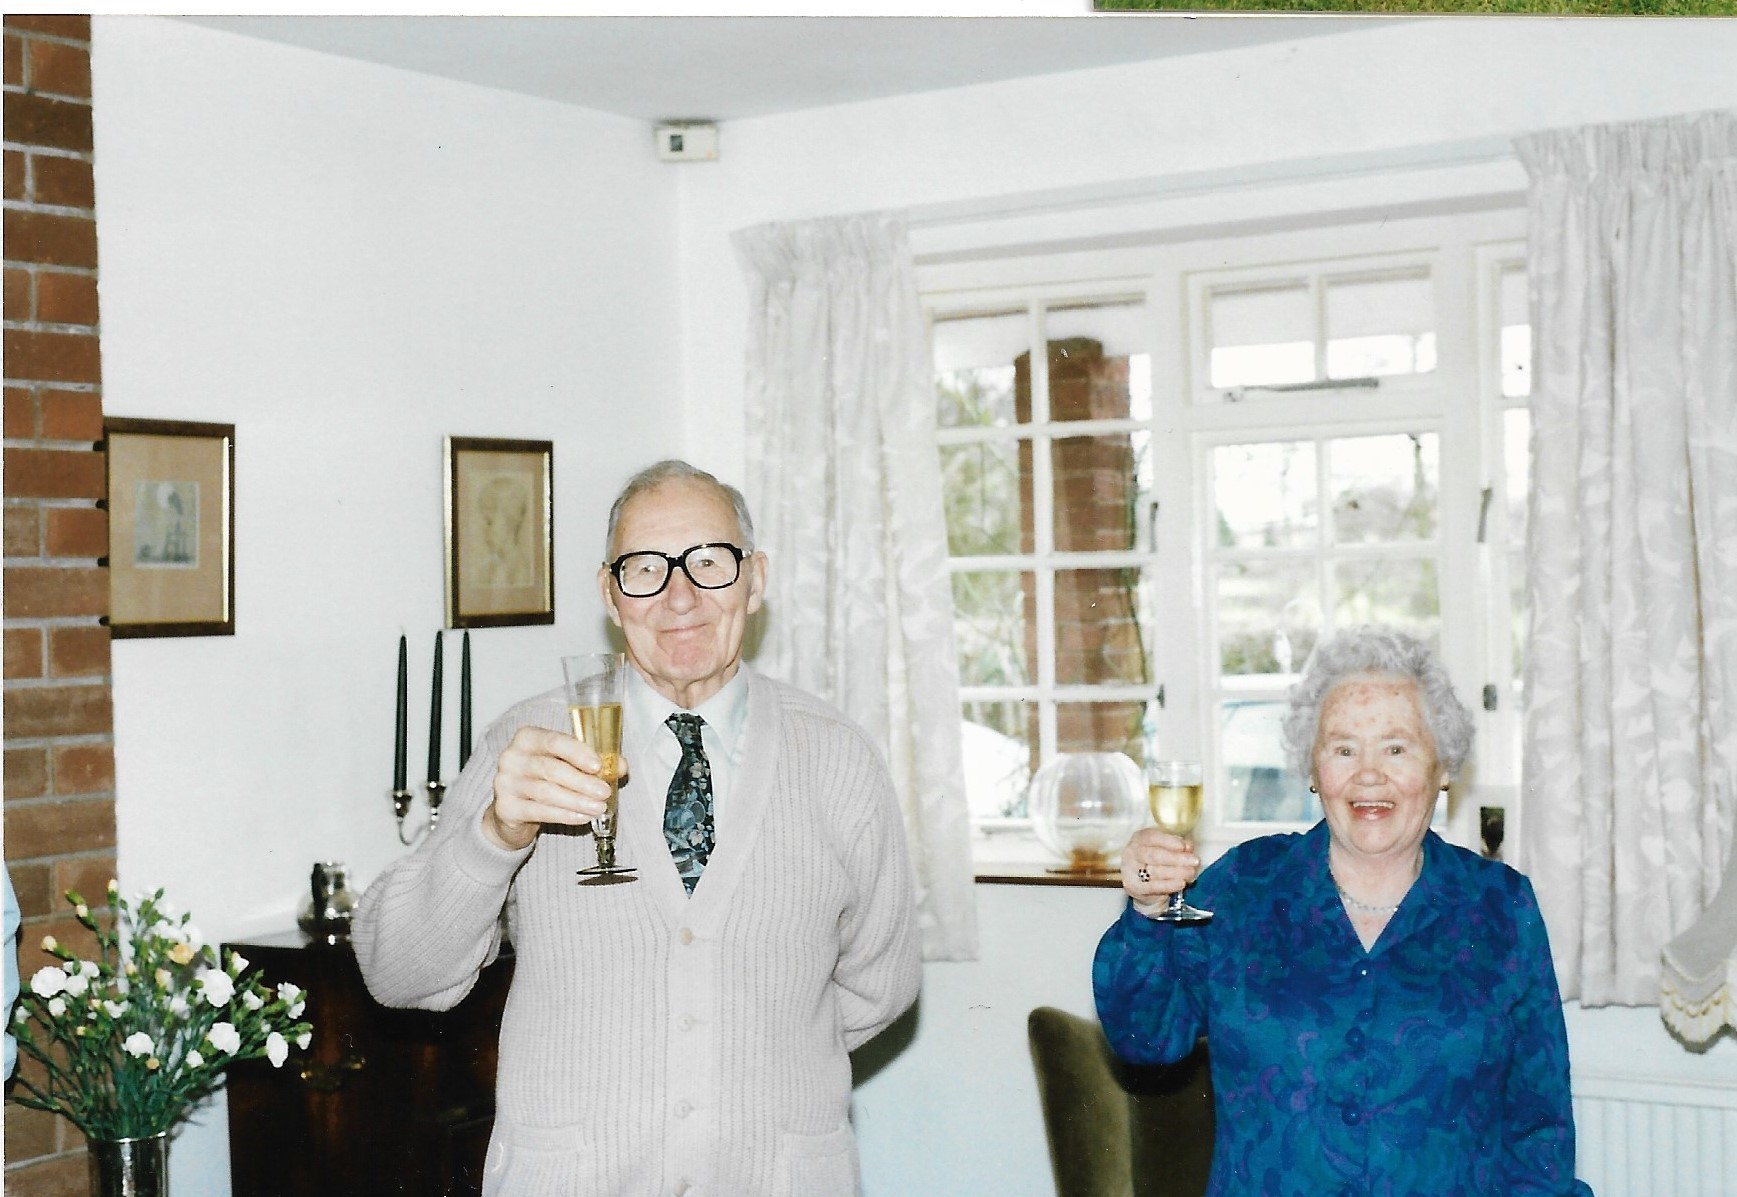 Farewell to Mr Bare, 102, who celebrated his 80th wedding anniversary weeks before